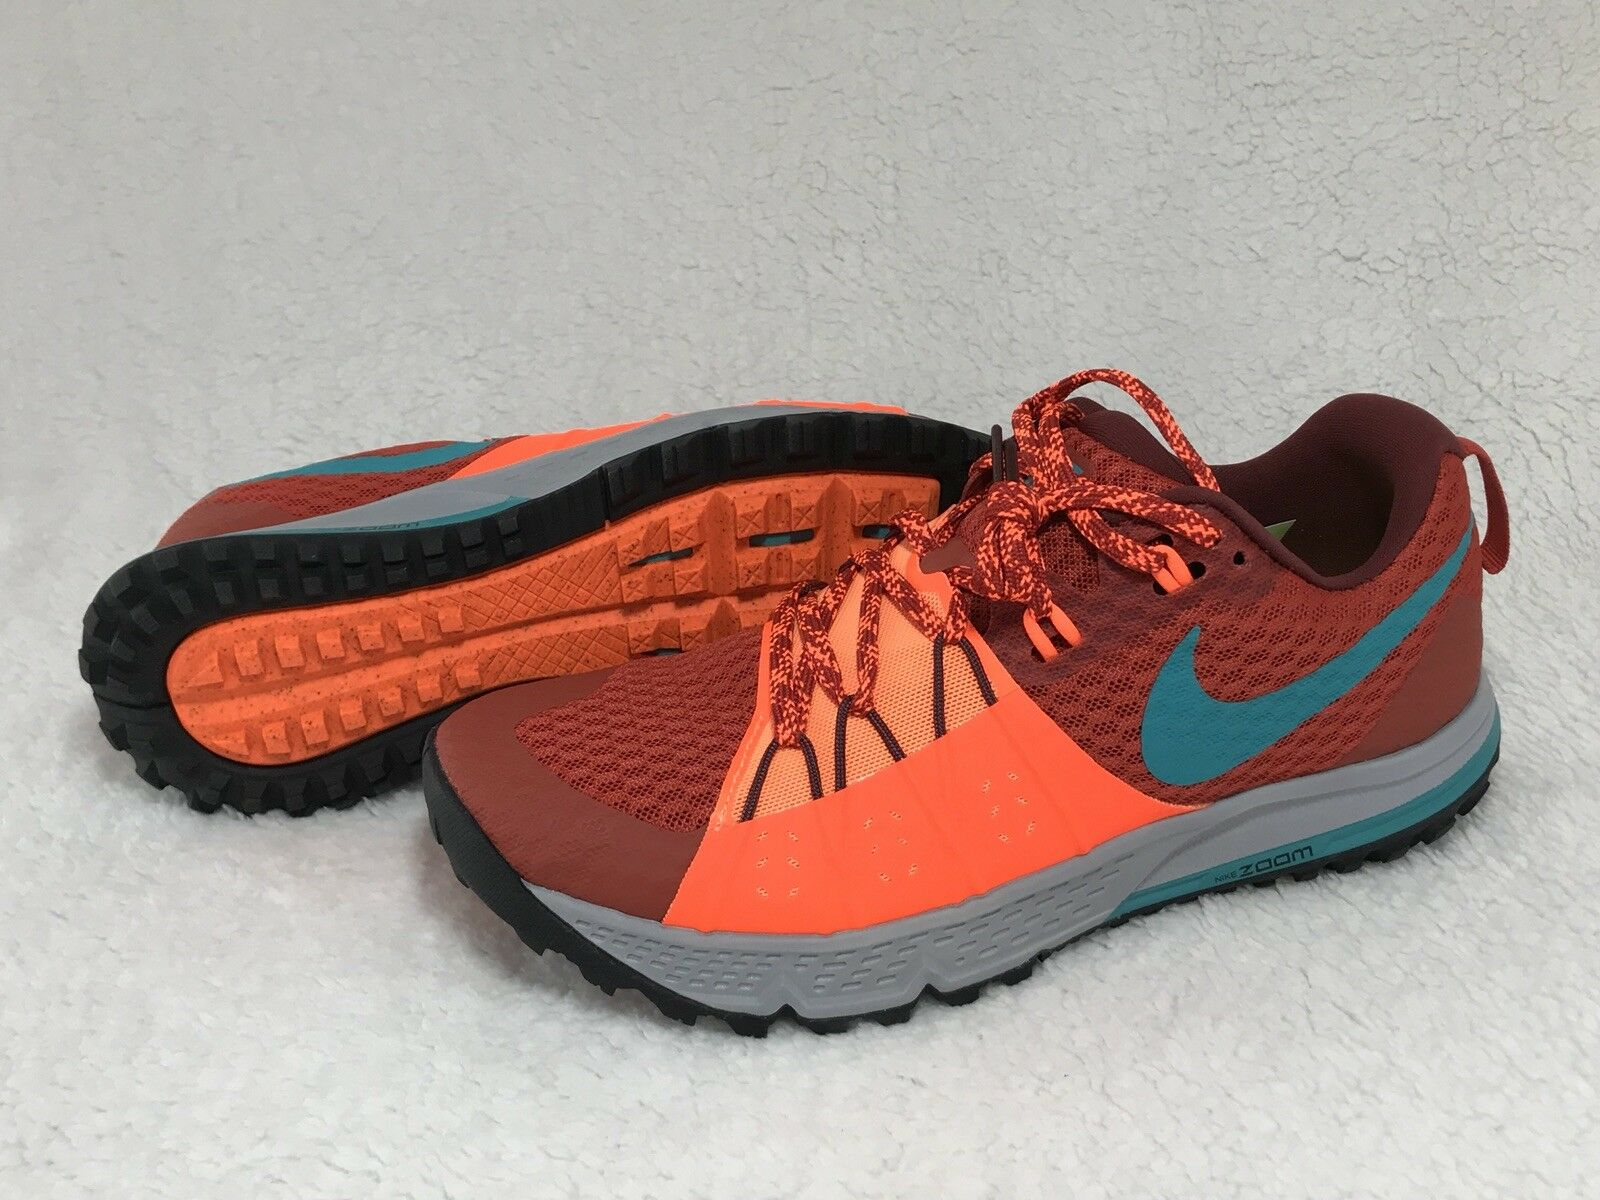 Nike Zoom Wildhorse 4 Trail Running Uomo Size 7.5 New in Box 880565 600